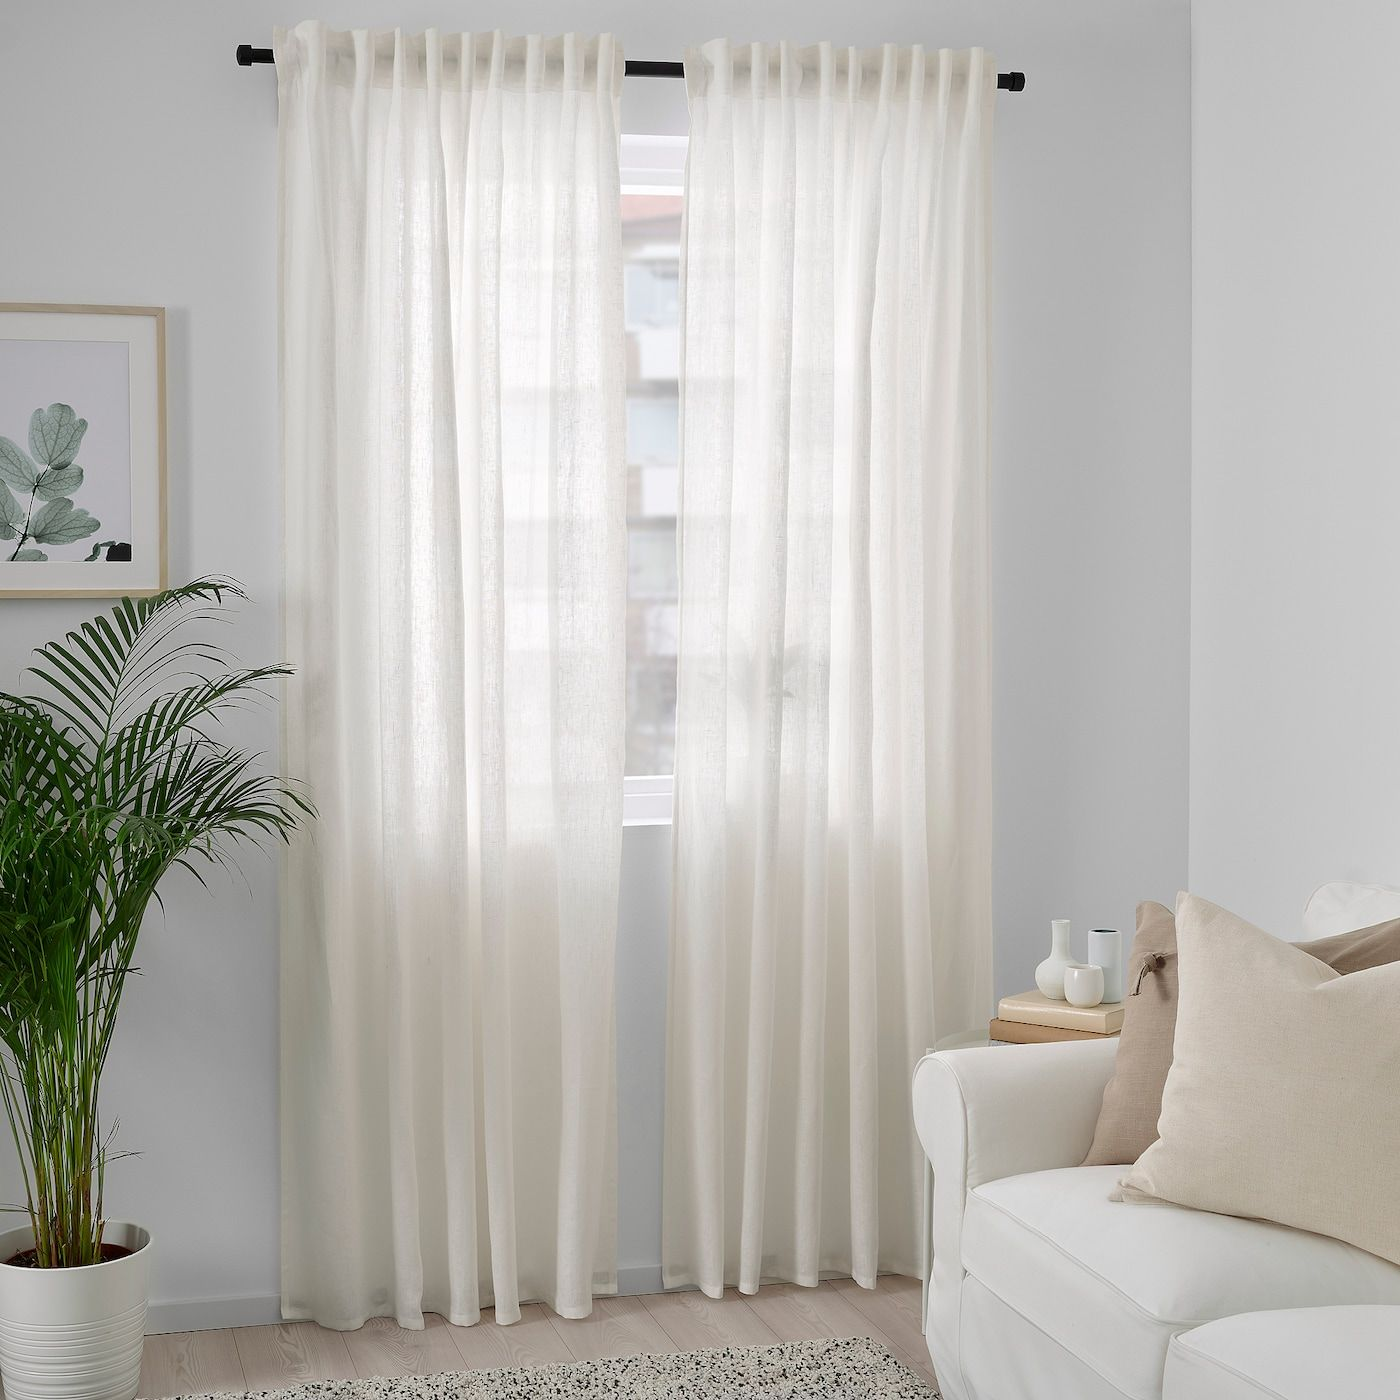 Dytag Curtains 1 Pair White Ikea In 2020 Sheers Curtains Living Room White Sheer Curtains Living Room White Curtains Living Room #off #white #curtains #living #room